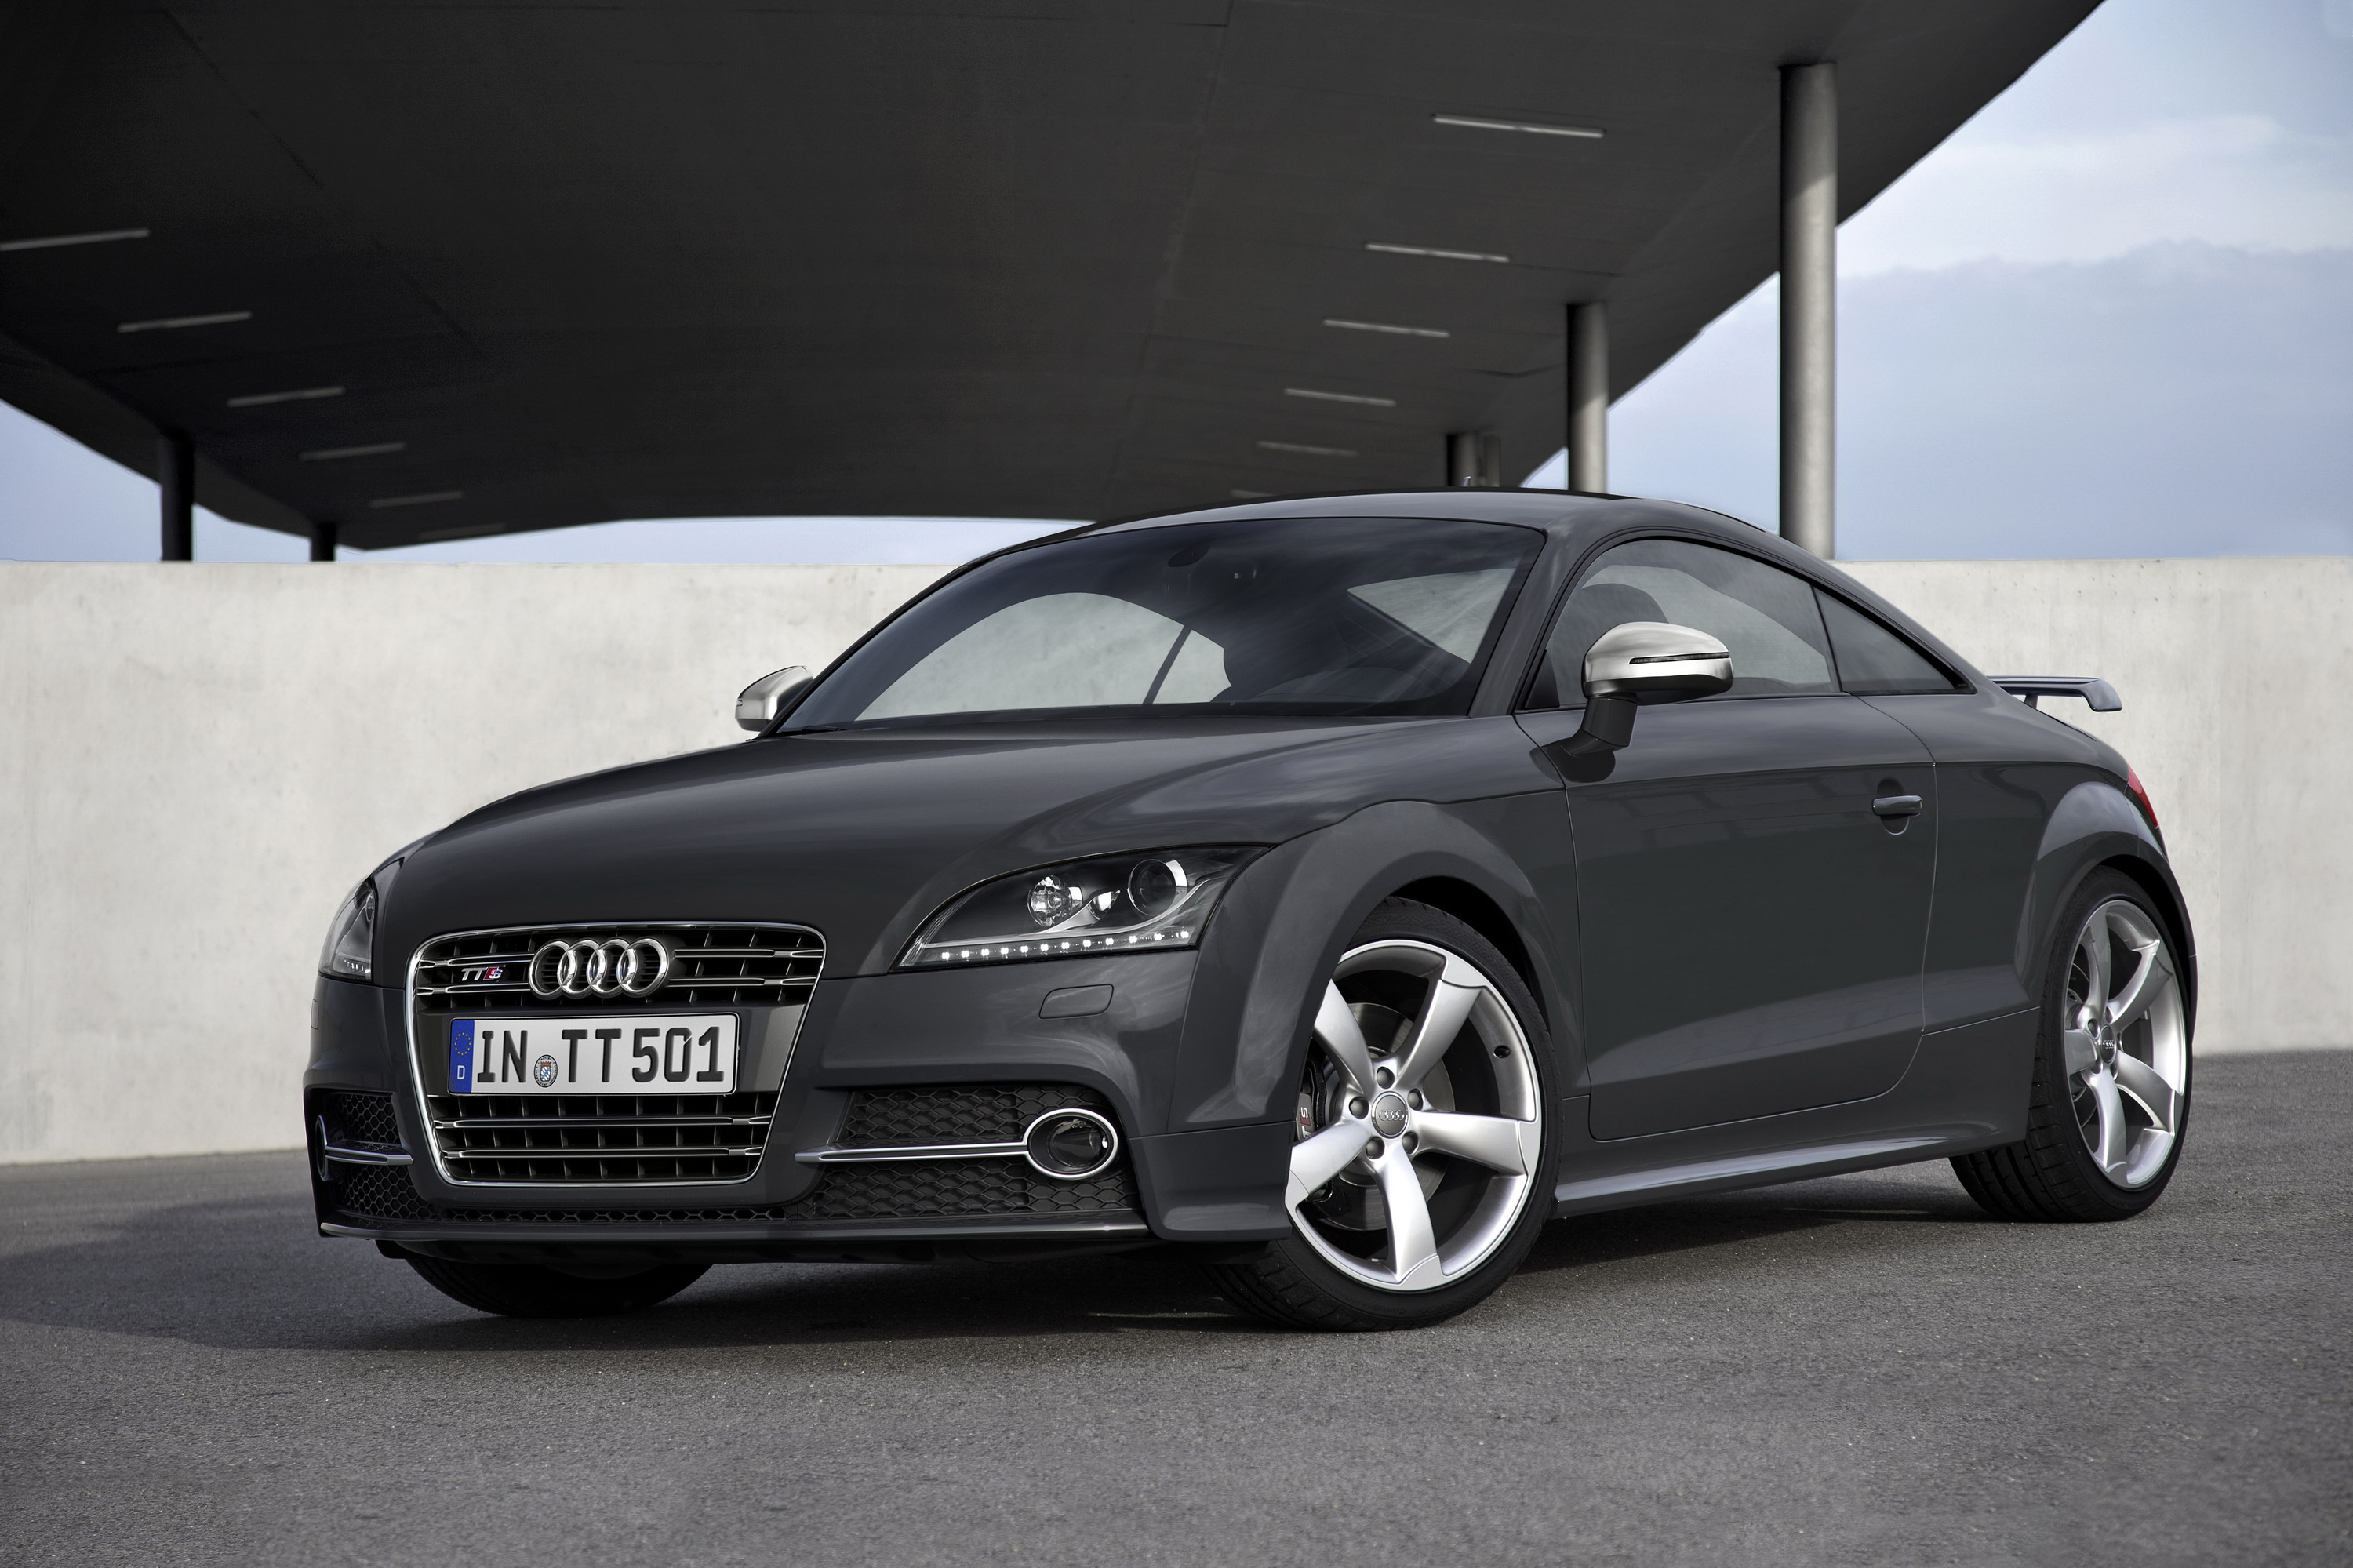 2015 Audi TT | Top Speed. »